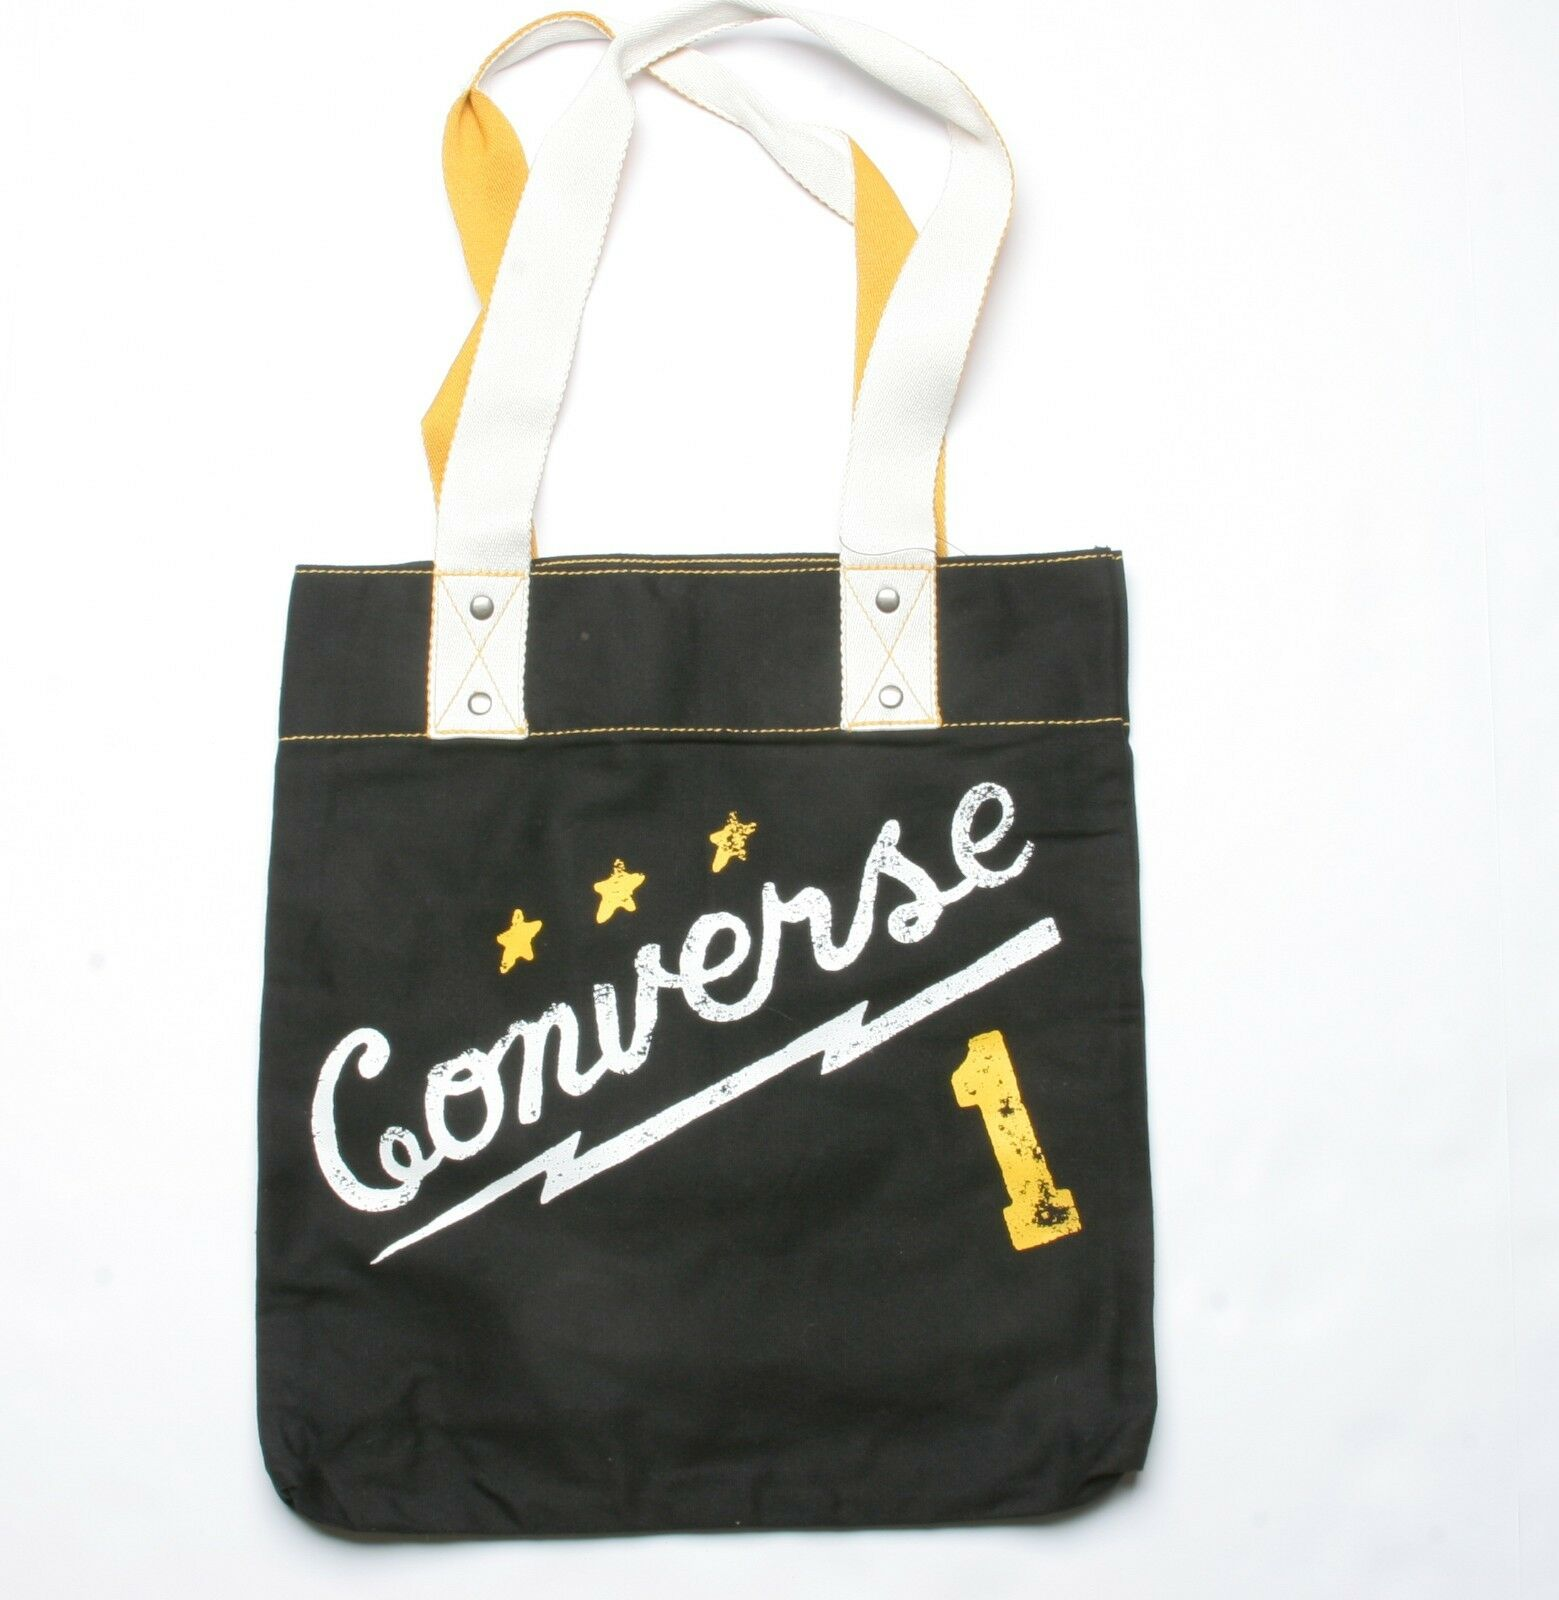 Converse Graphic Simple Tote Bag (Black) 1 of 1Only 2 available ... cd0f5e4fe5c50